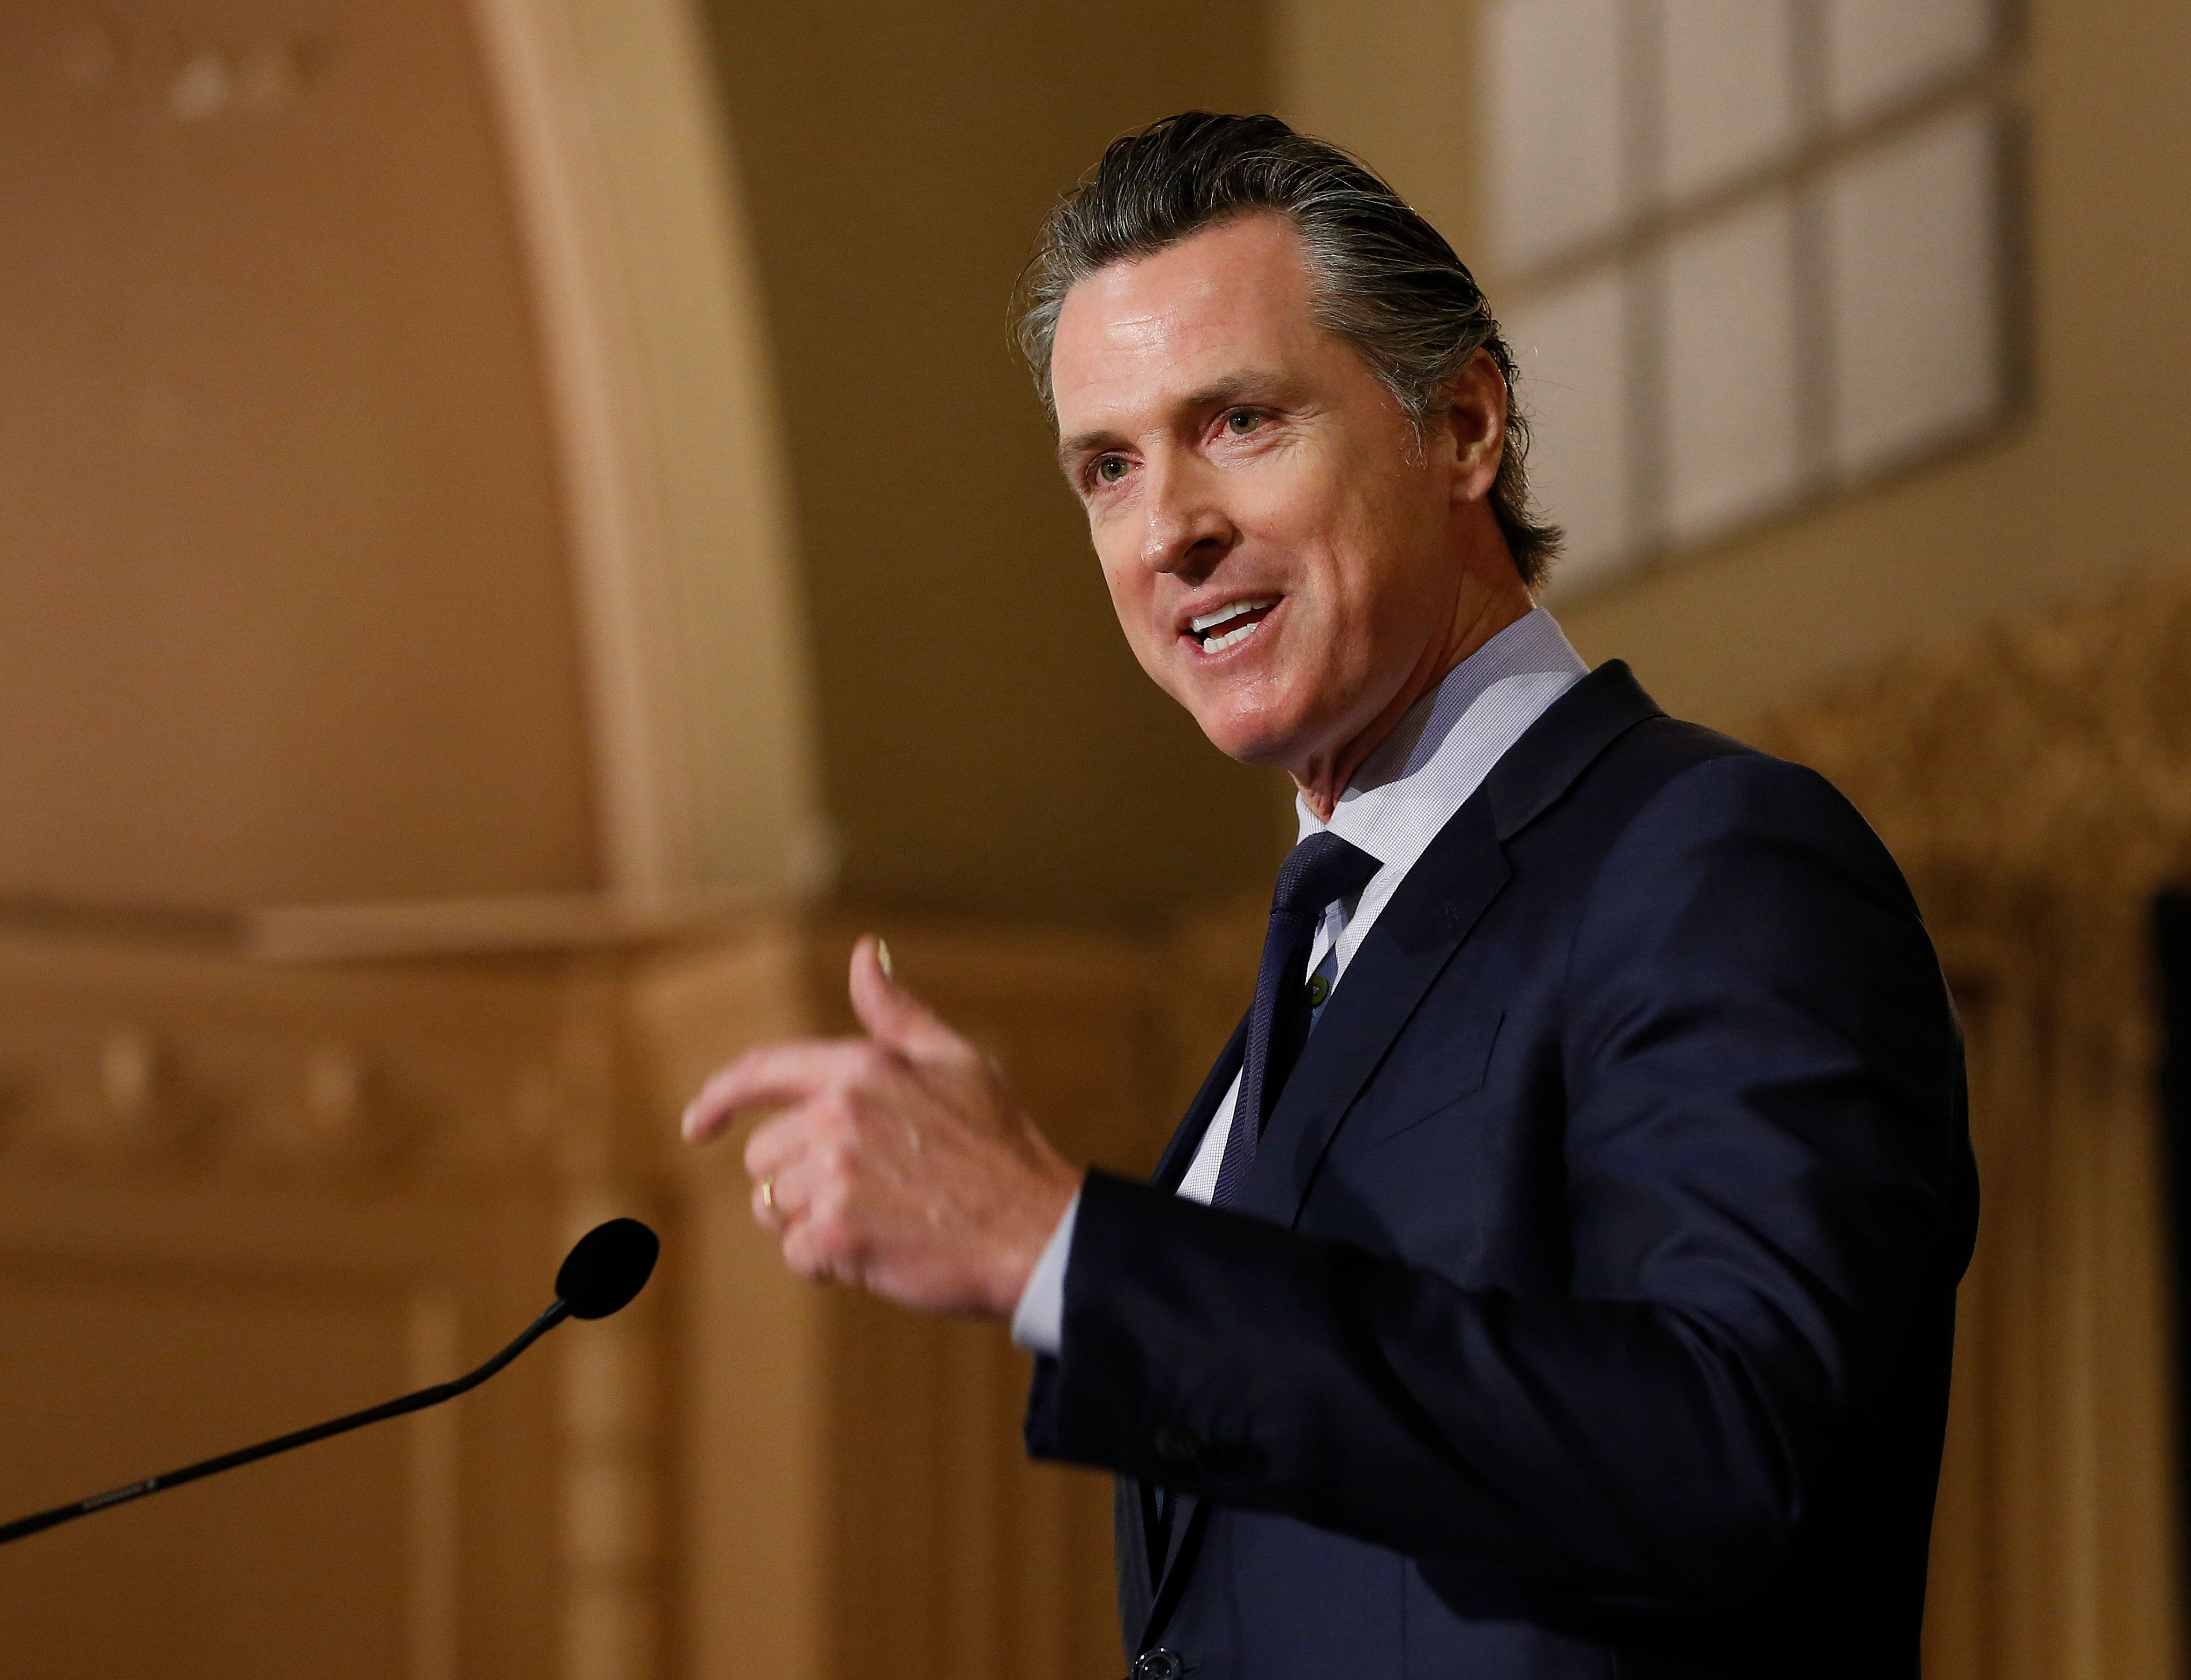 California Gov. Gavin Newsom to recall troops from Mexico border